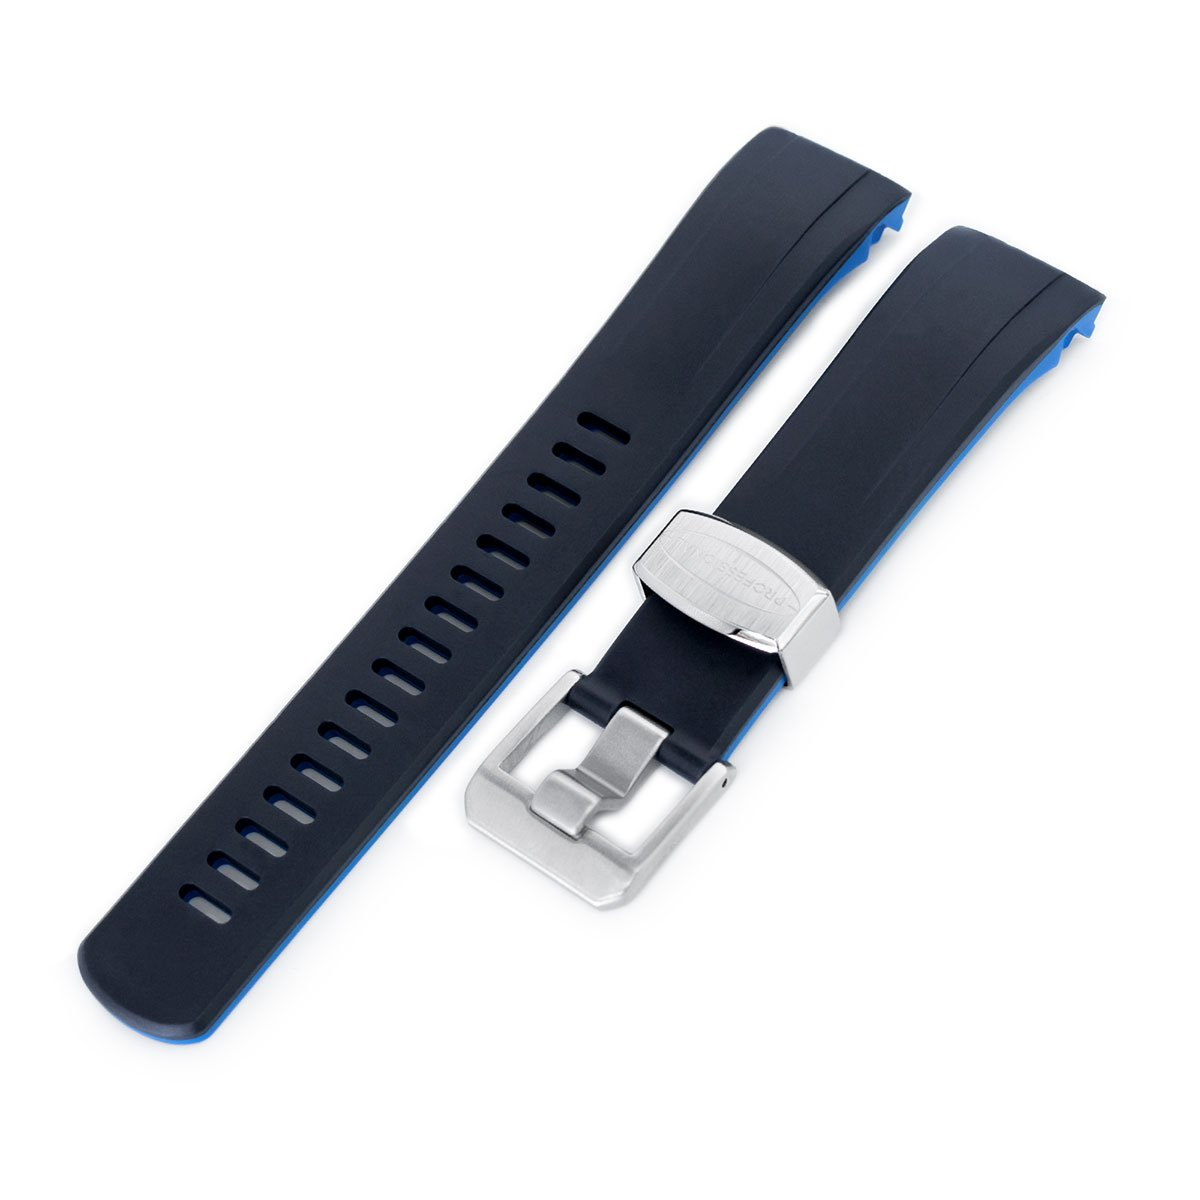 22mm Crafter Blue Dual Color Black & Blue Rubber Curved Lug Watch Strap for Seiko Samurai SRPB51 Strapcode Watch Bands